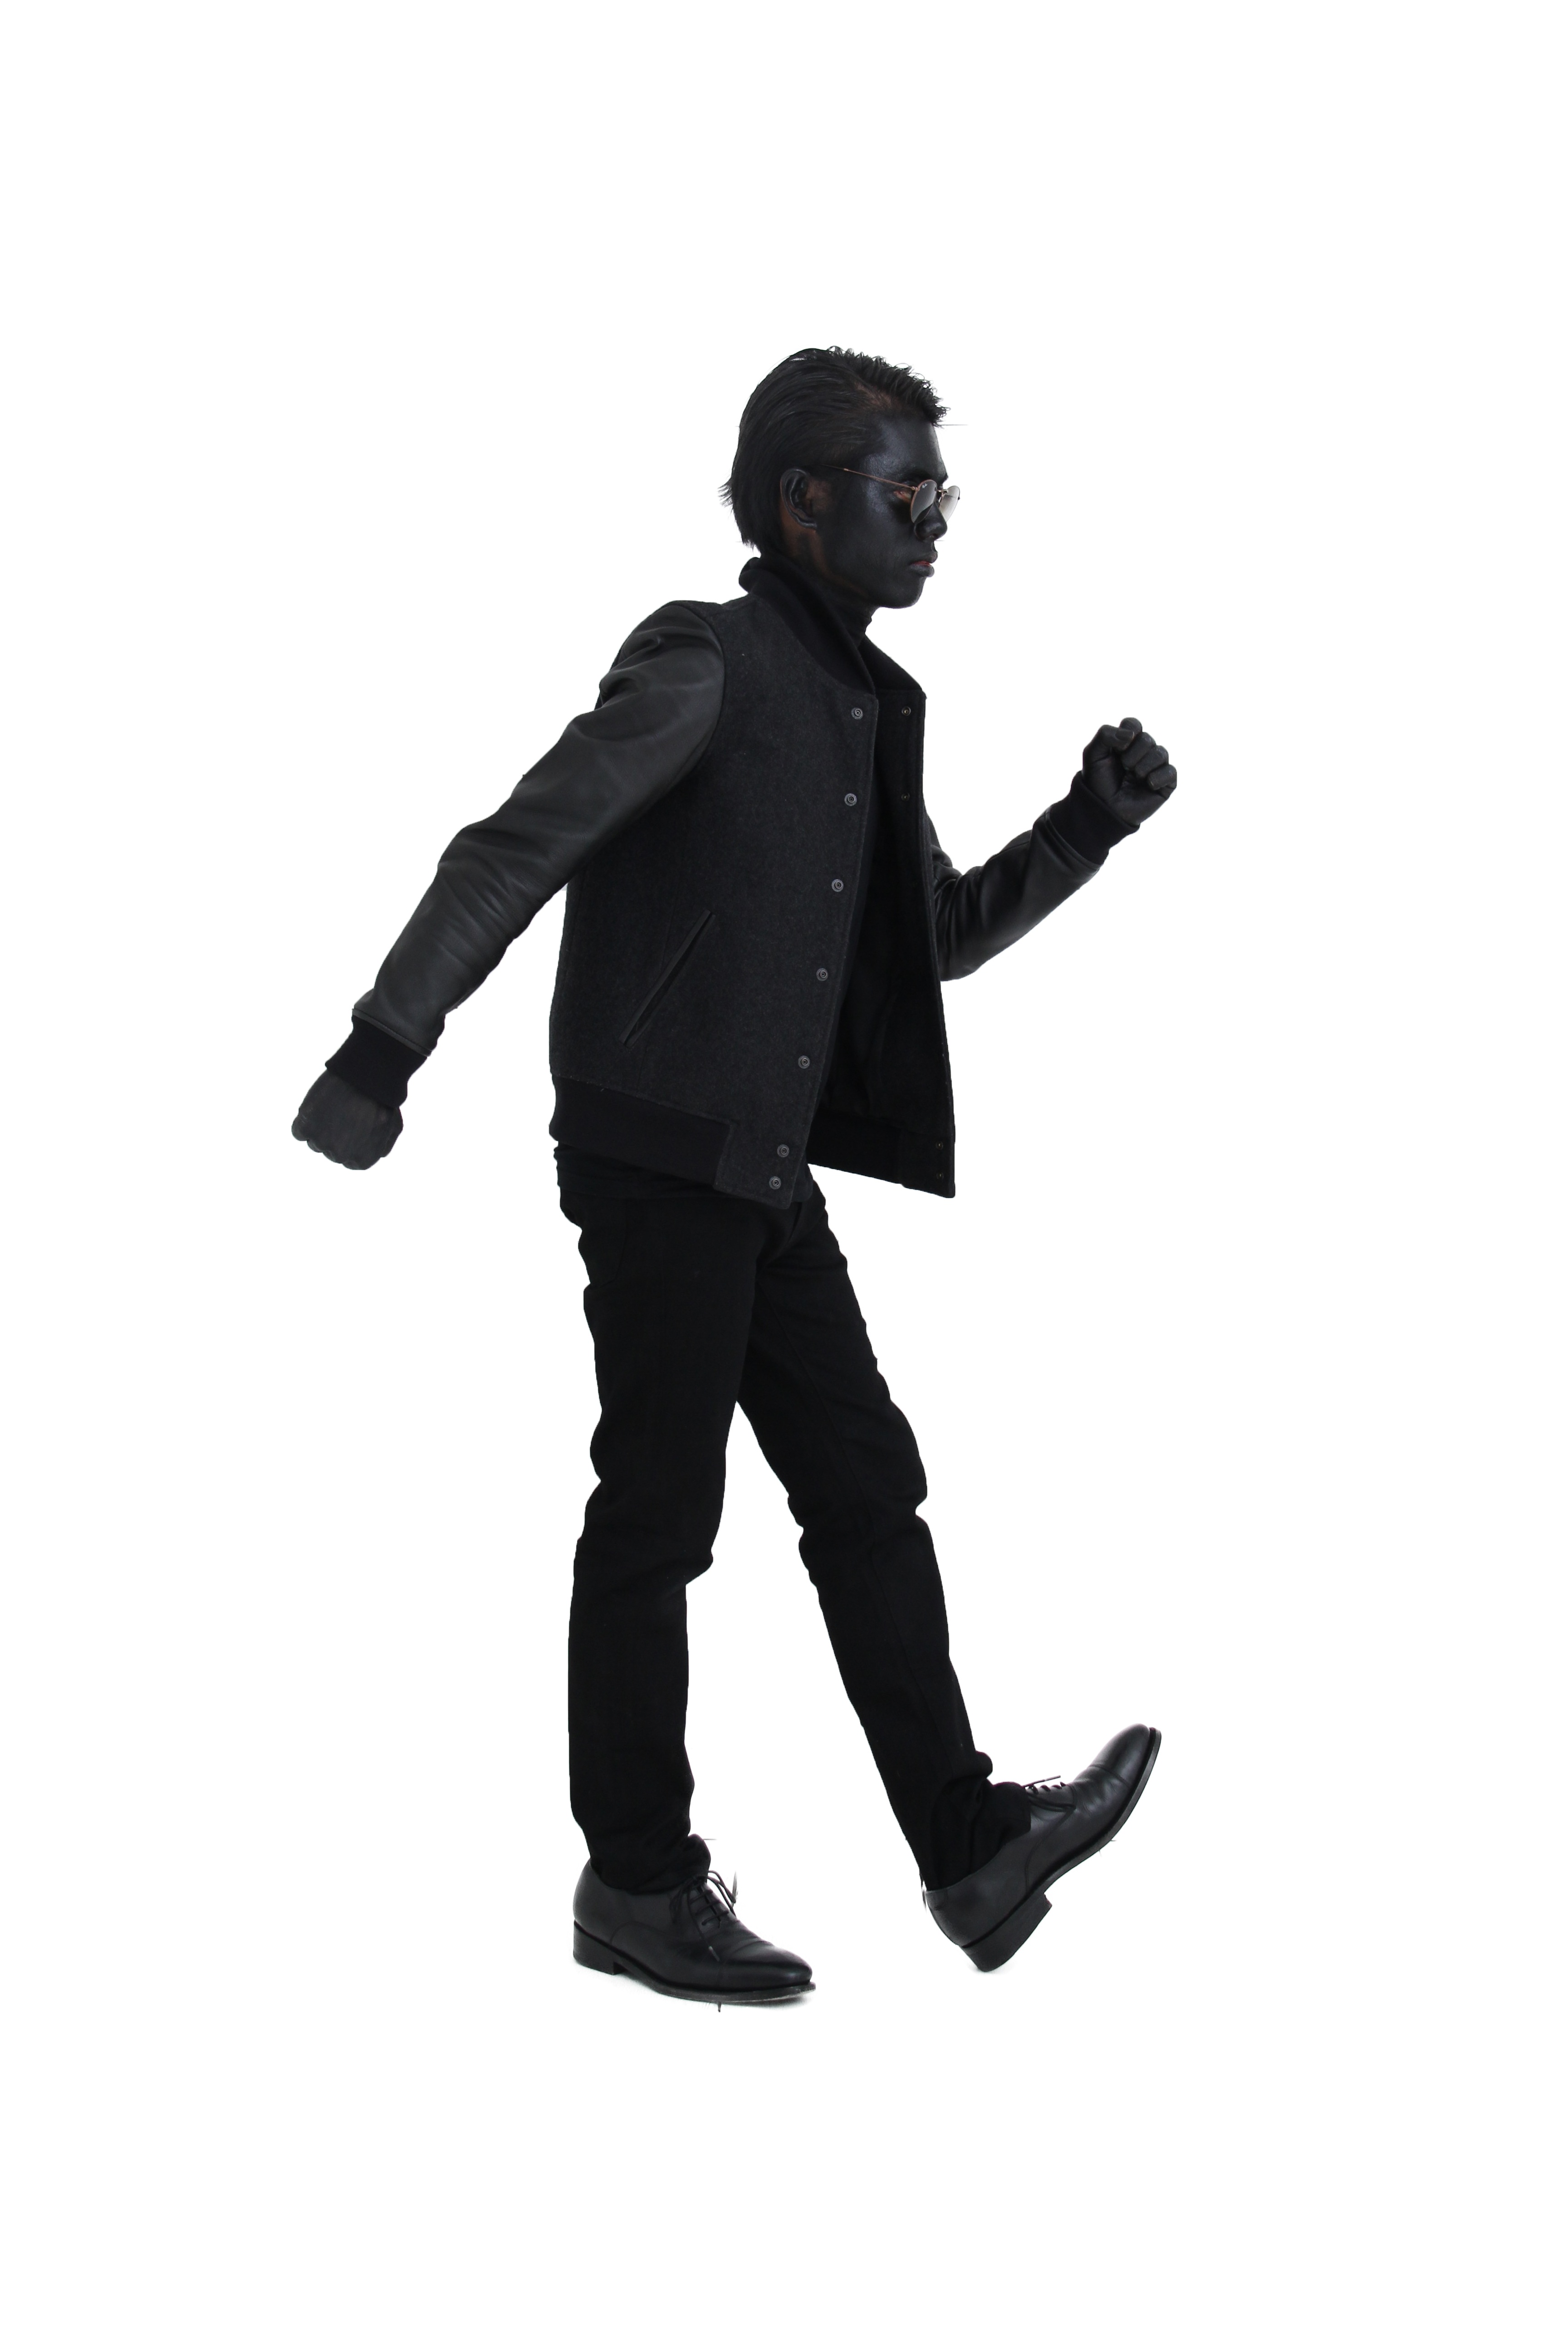 3456x5184 Free Images Man, Silhouette, Male, Model, Human, Clothing, Black